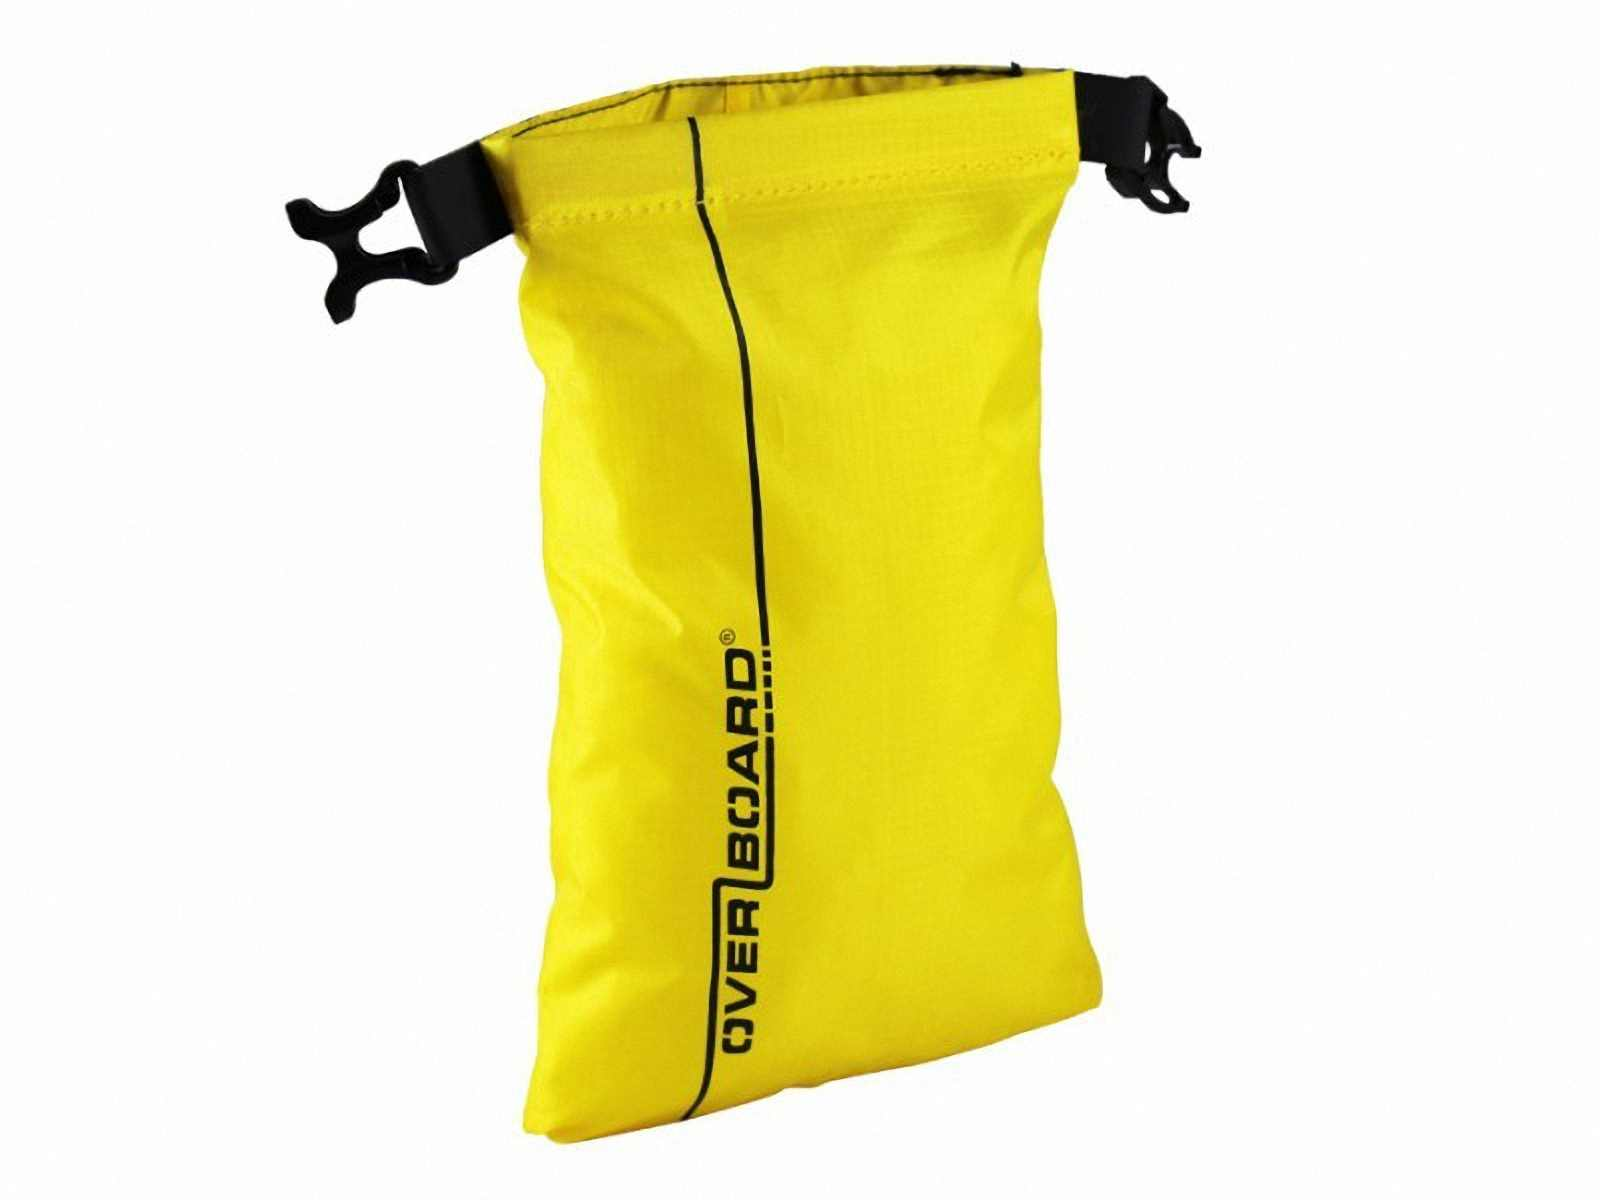 Водонепроницаемый гермомешок OverBoard OB1031Y - Waterproof Dry Pouch - 1 L. Фото 2